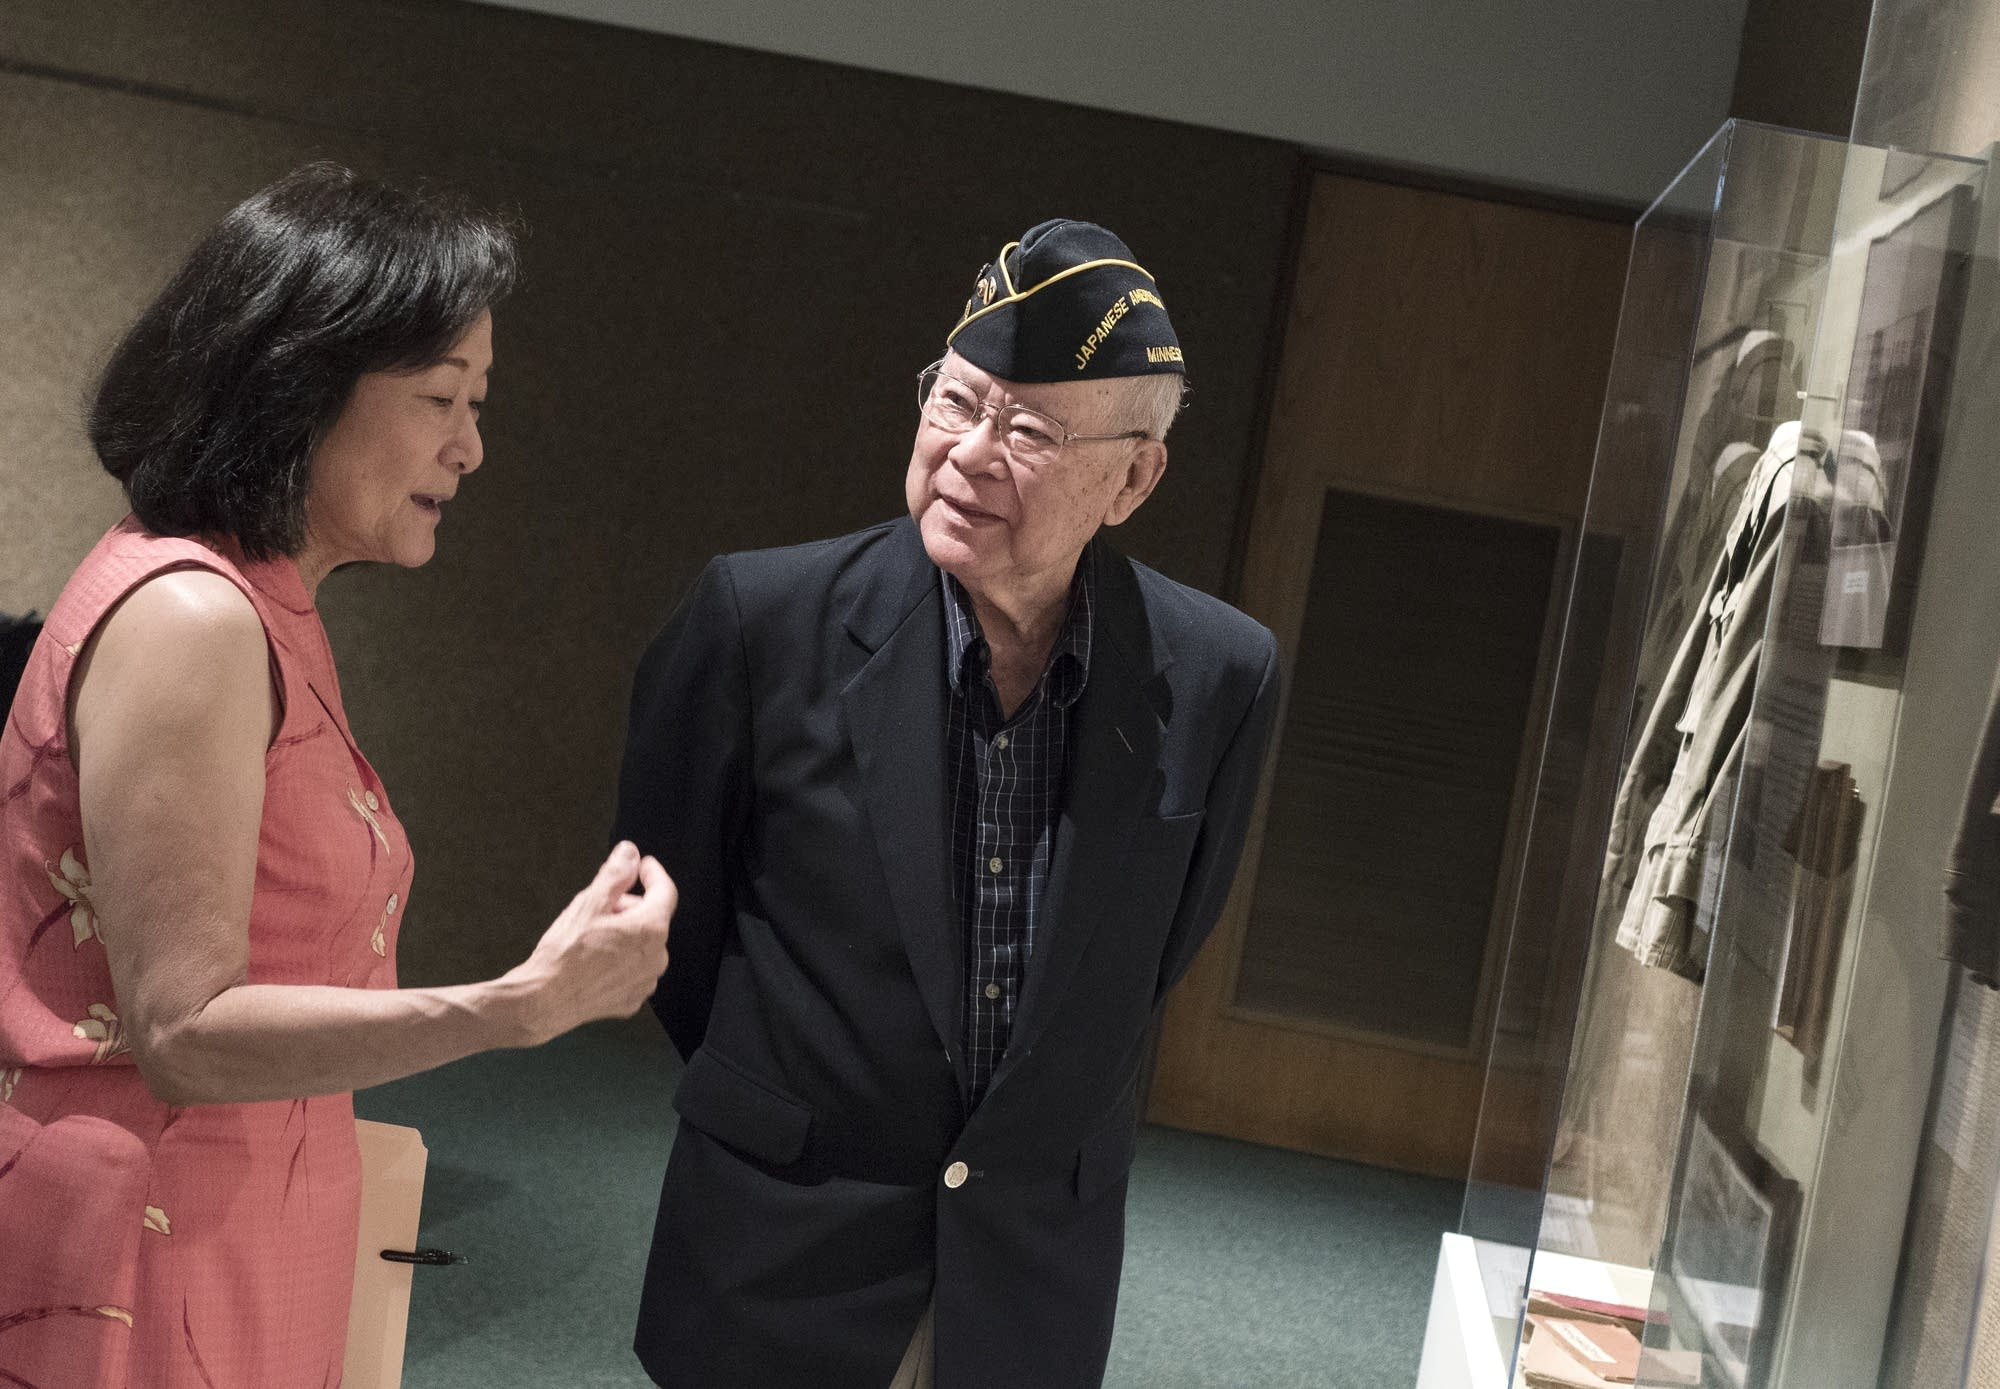 Bud Nakasone, of St. Paul, talks with Karen Tanaka Lucas of Apple Valley.